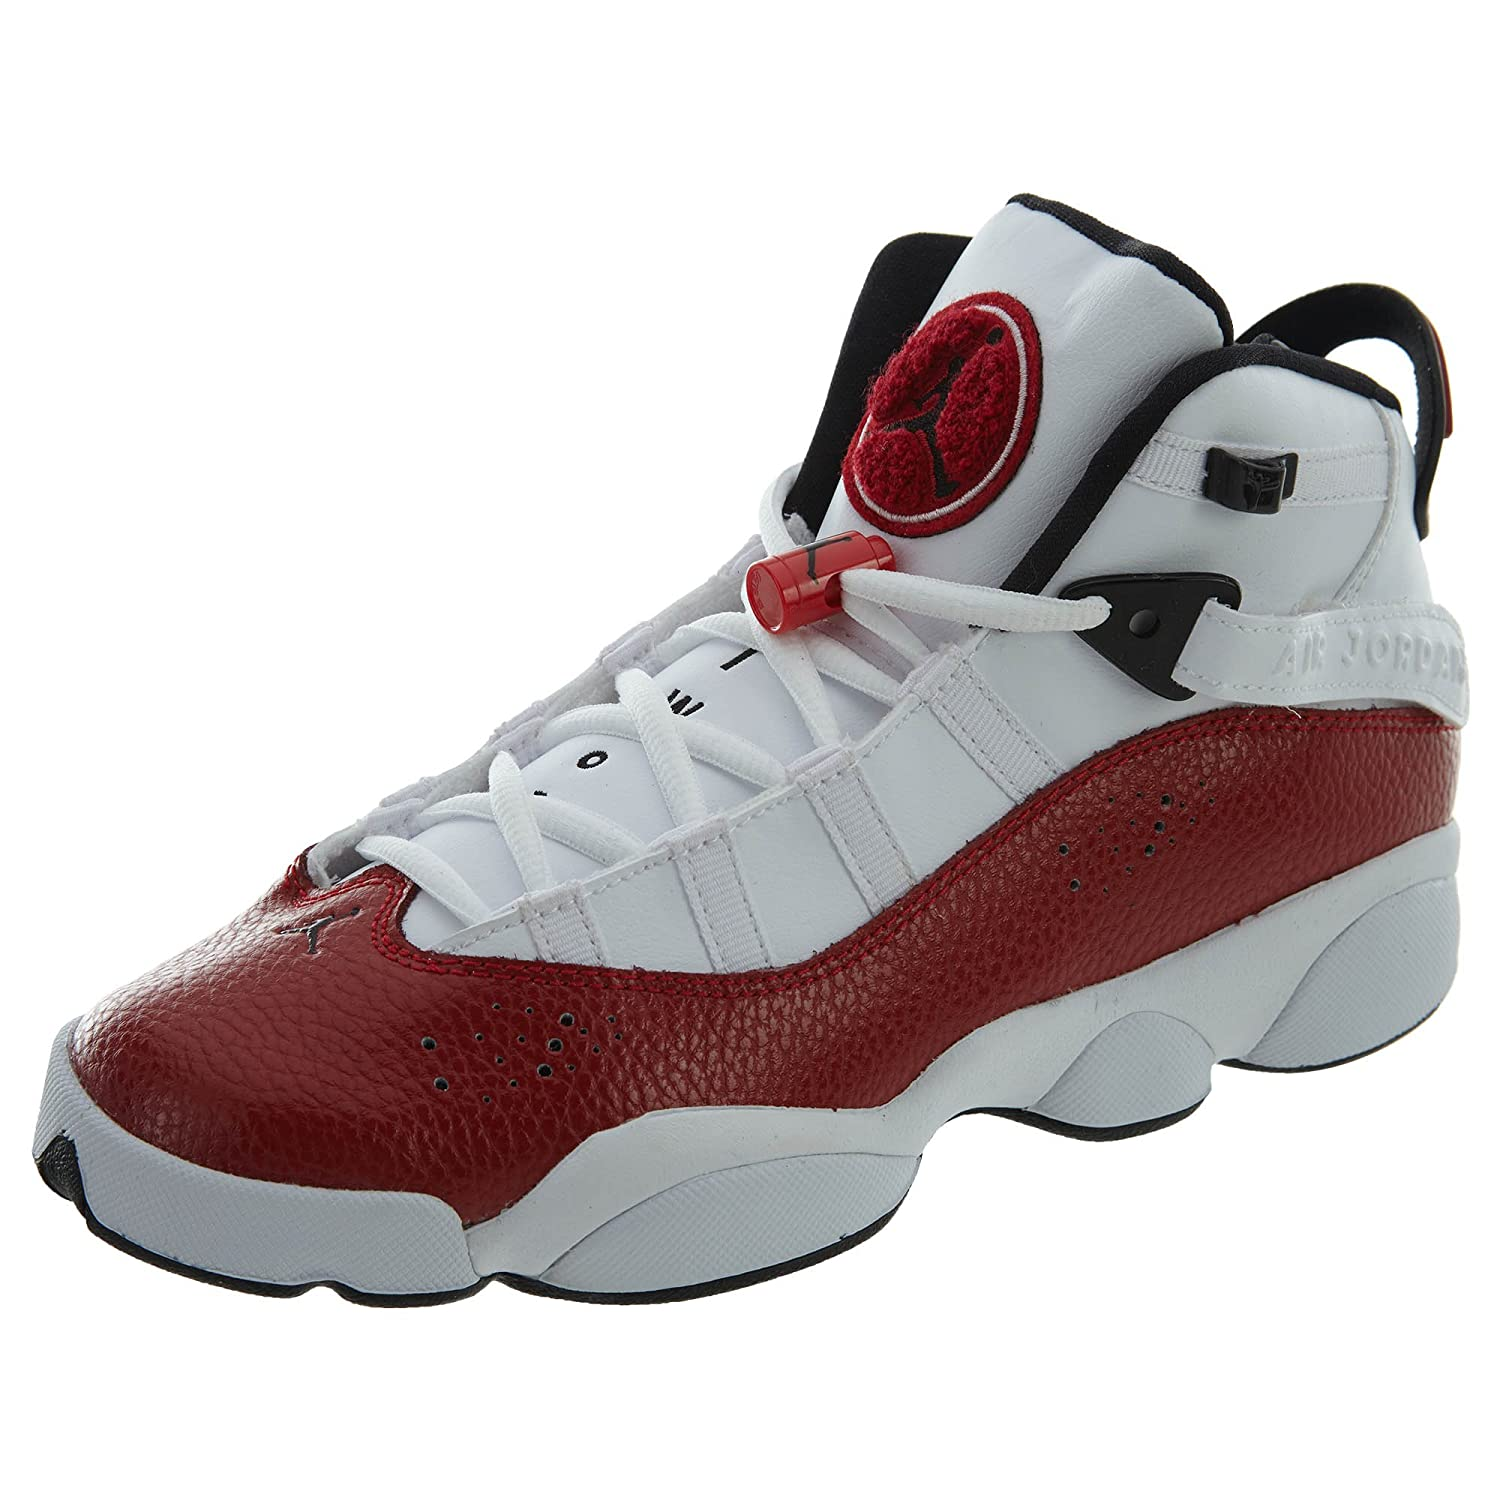 timeless design 35274 9d506 Amazon.com   Nike 323419-120  Jordan 6 Rings White Black Gym Red Sneakers (6  M US Big Kid)   Sneakers